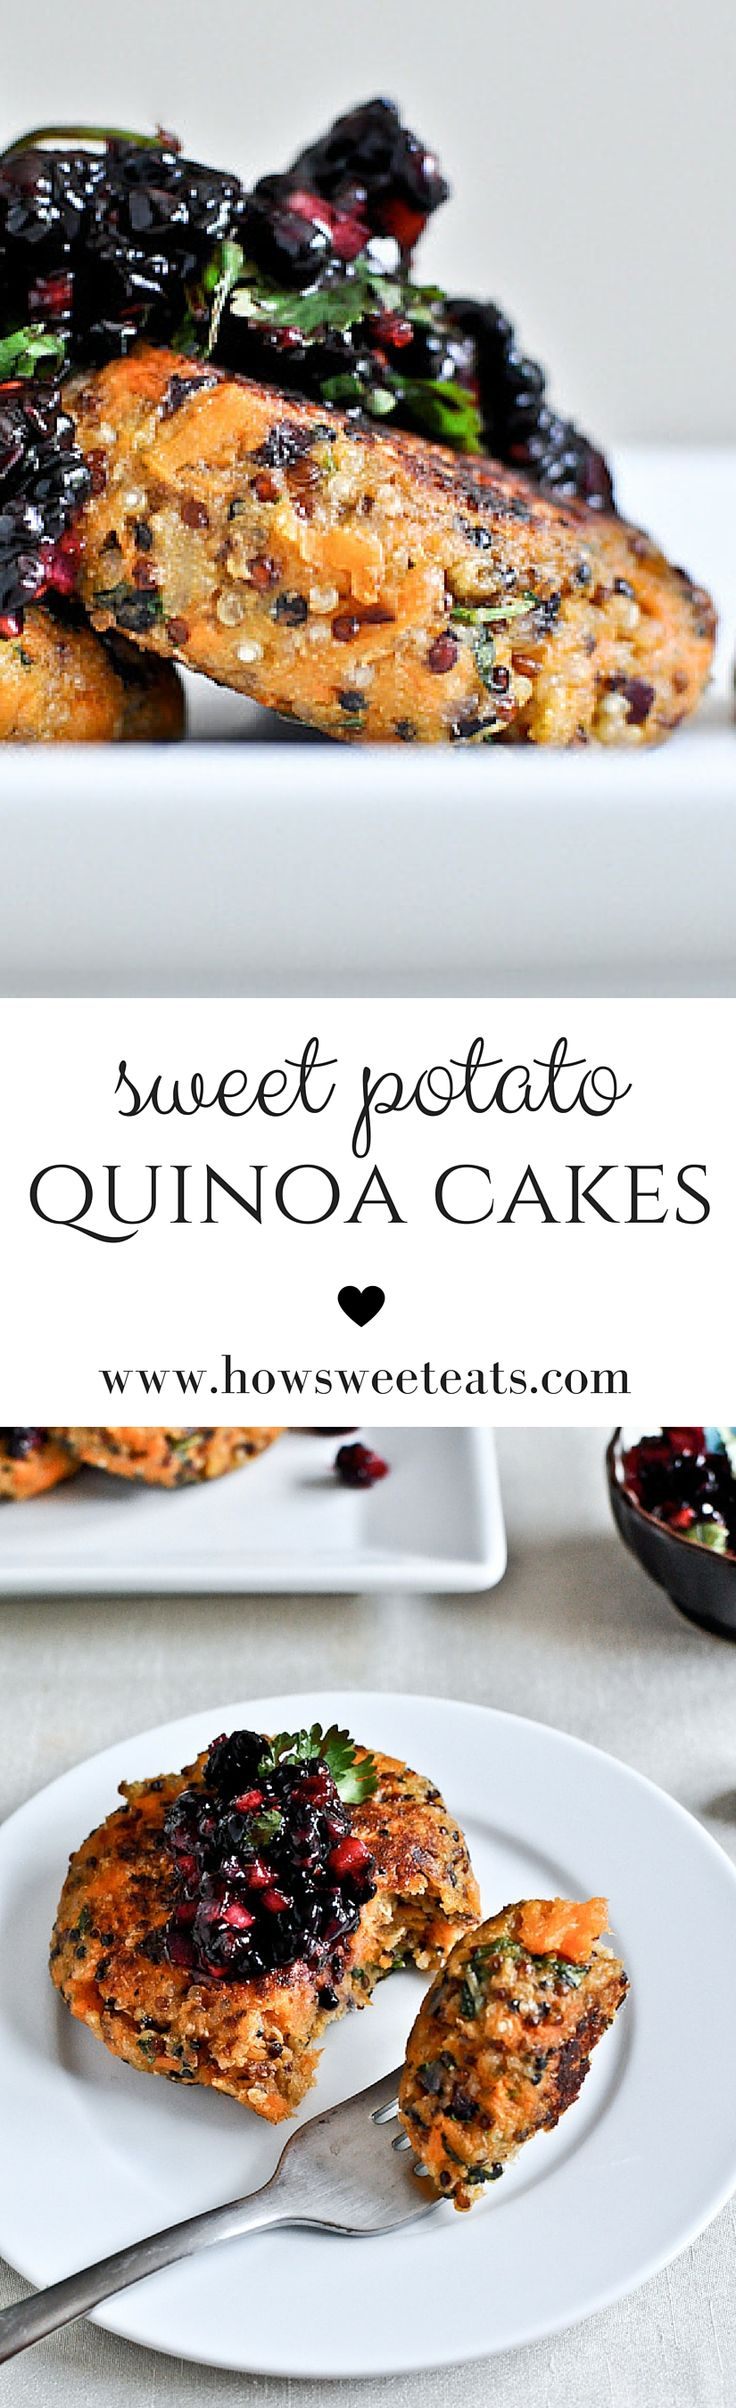 sweet potato quinoa cakes with blackberry salsa by @howsweeteats I howsweeteats.com